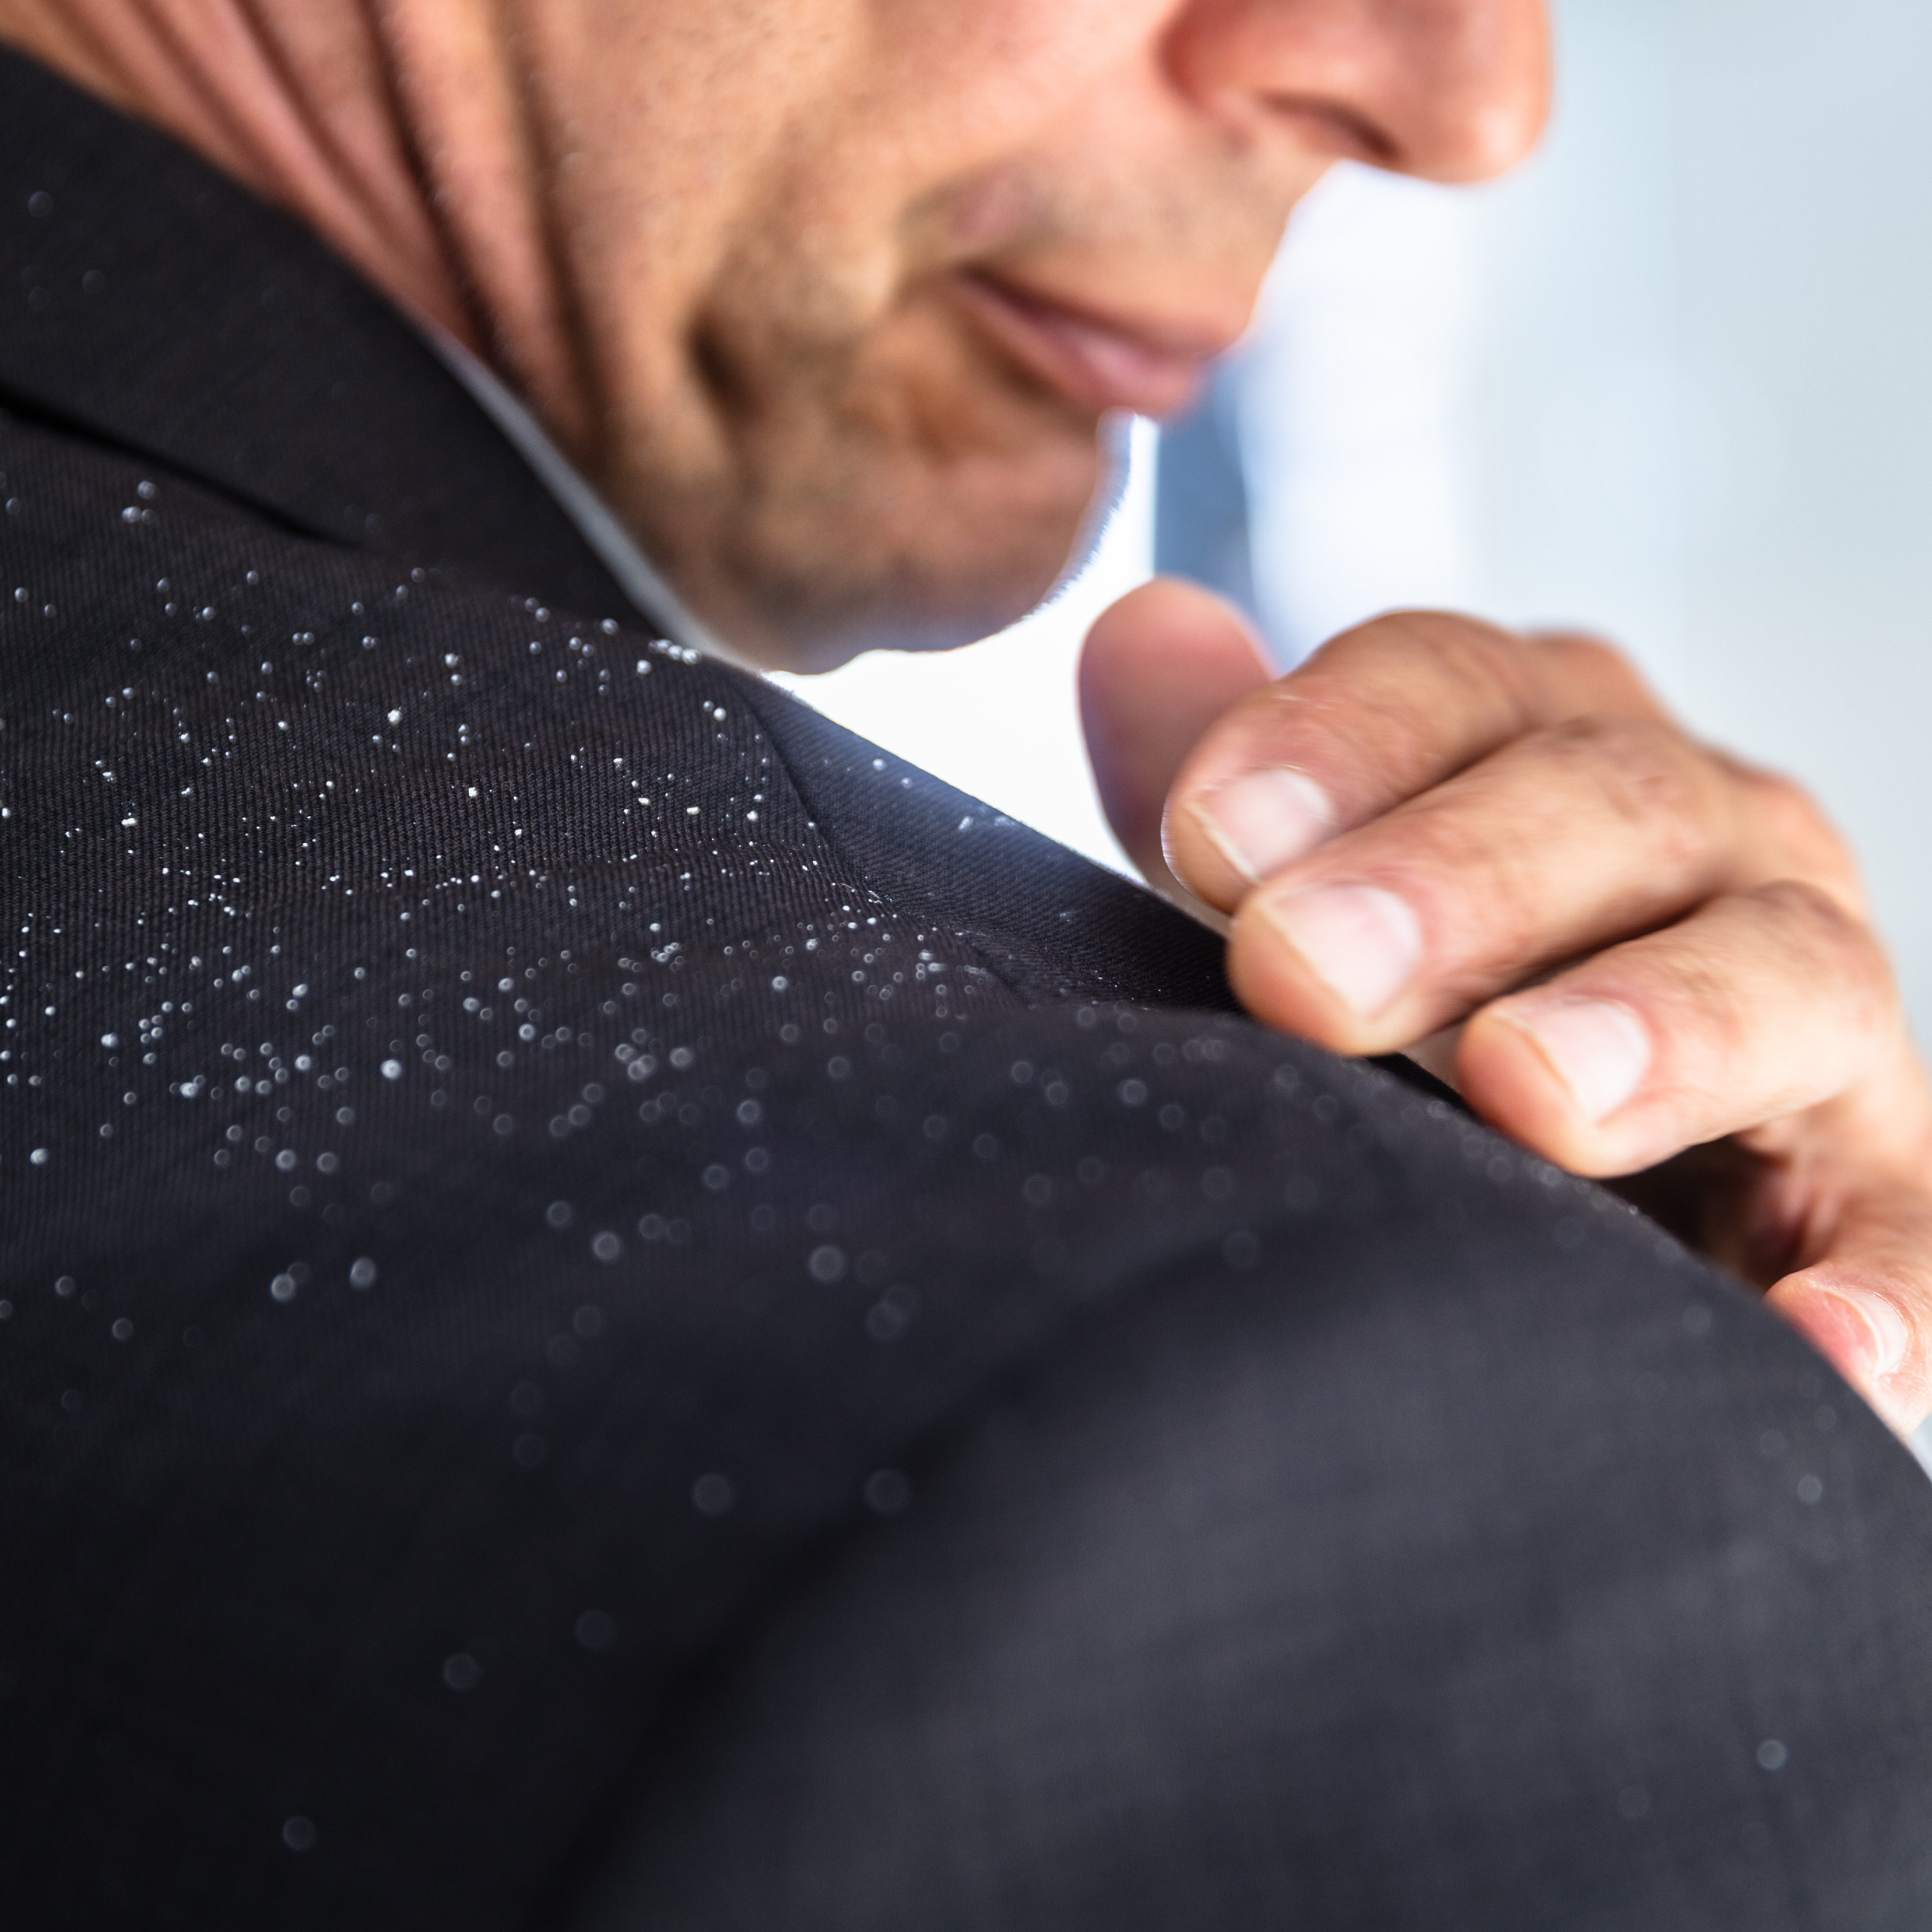 a man brushing dandruff flakes off his business jacket